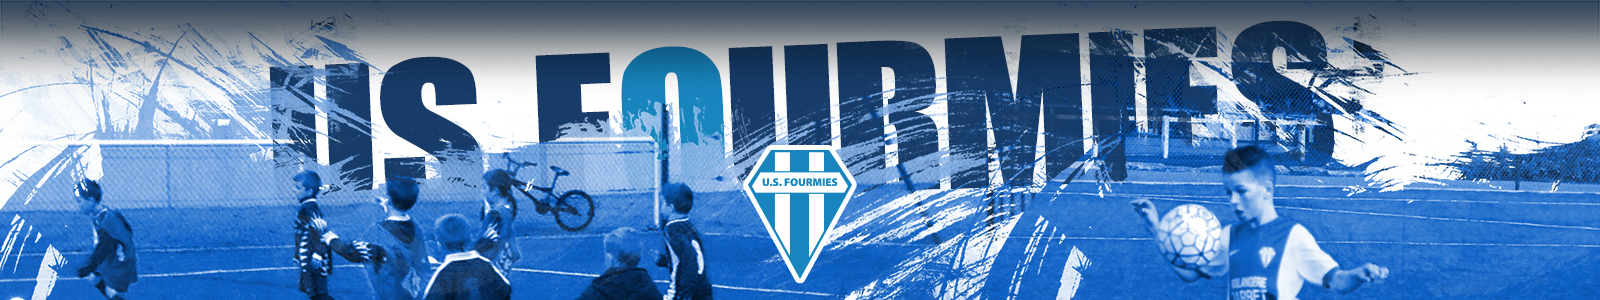 US FOURMIES : site officiel du club de foot de FOURMIES - footeo